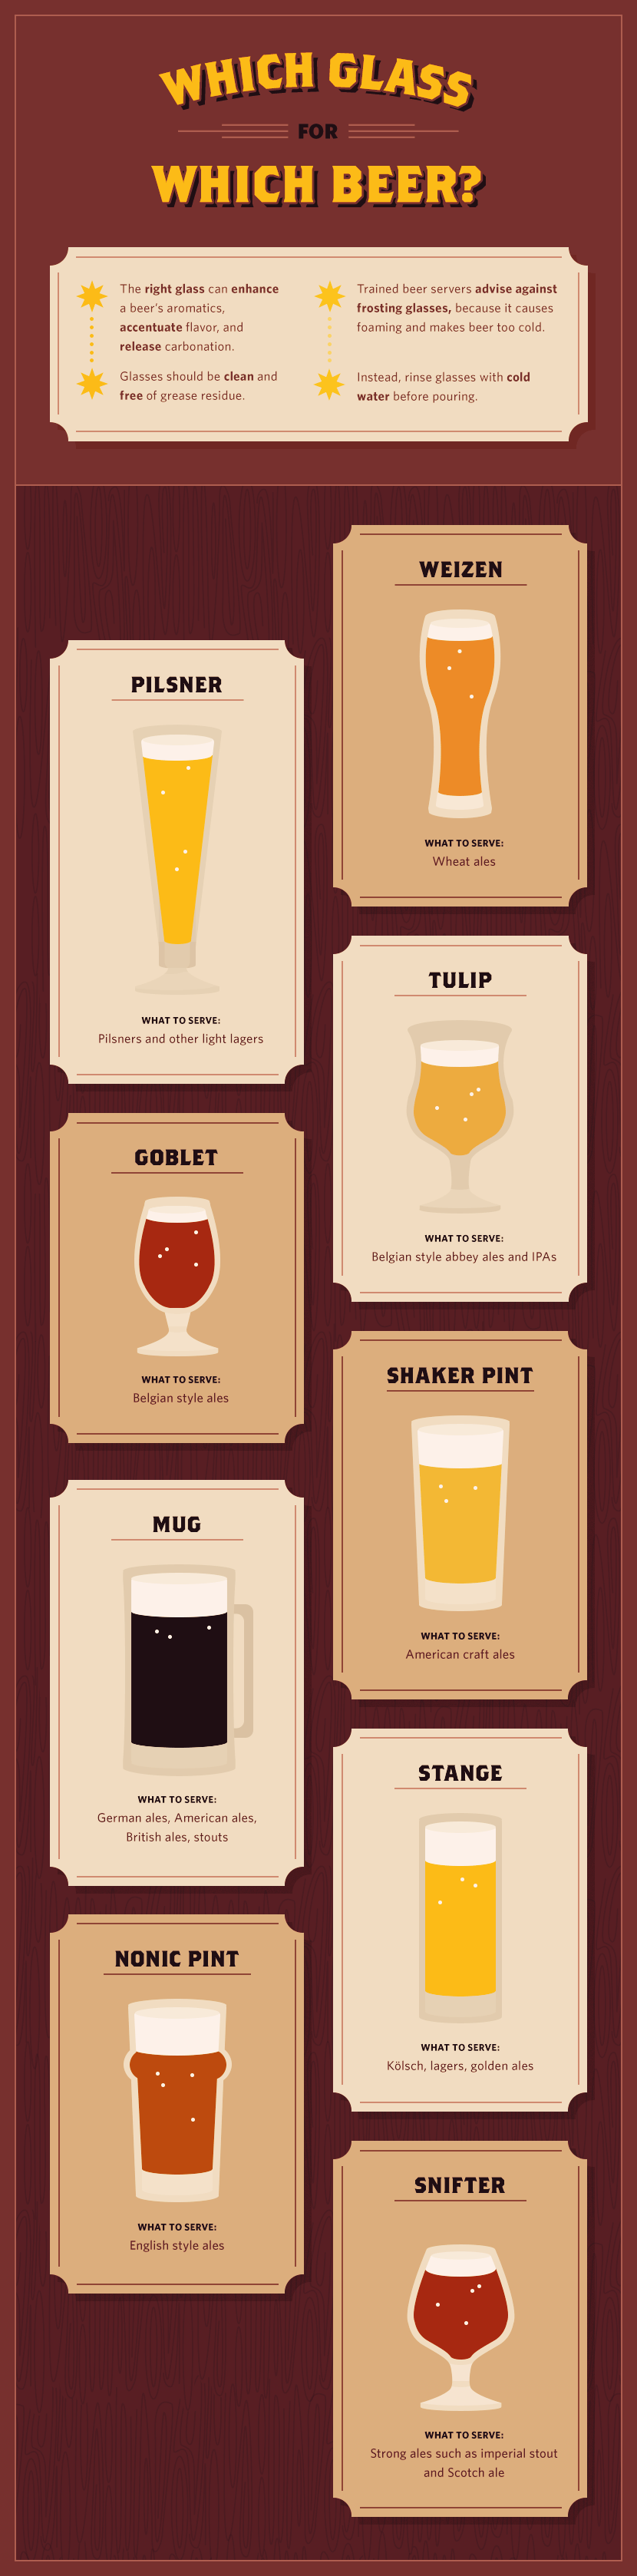 Pairing Craft Beer and Food | Fix com